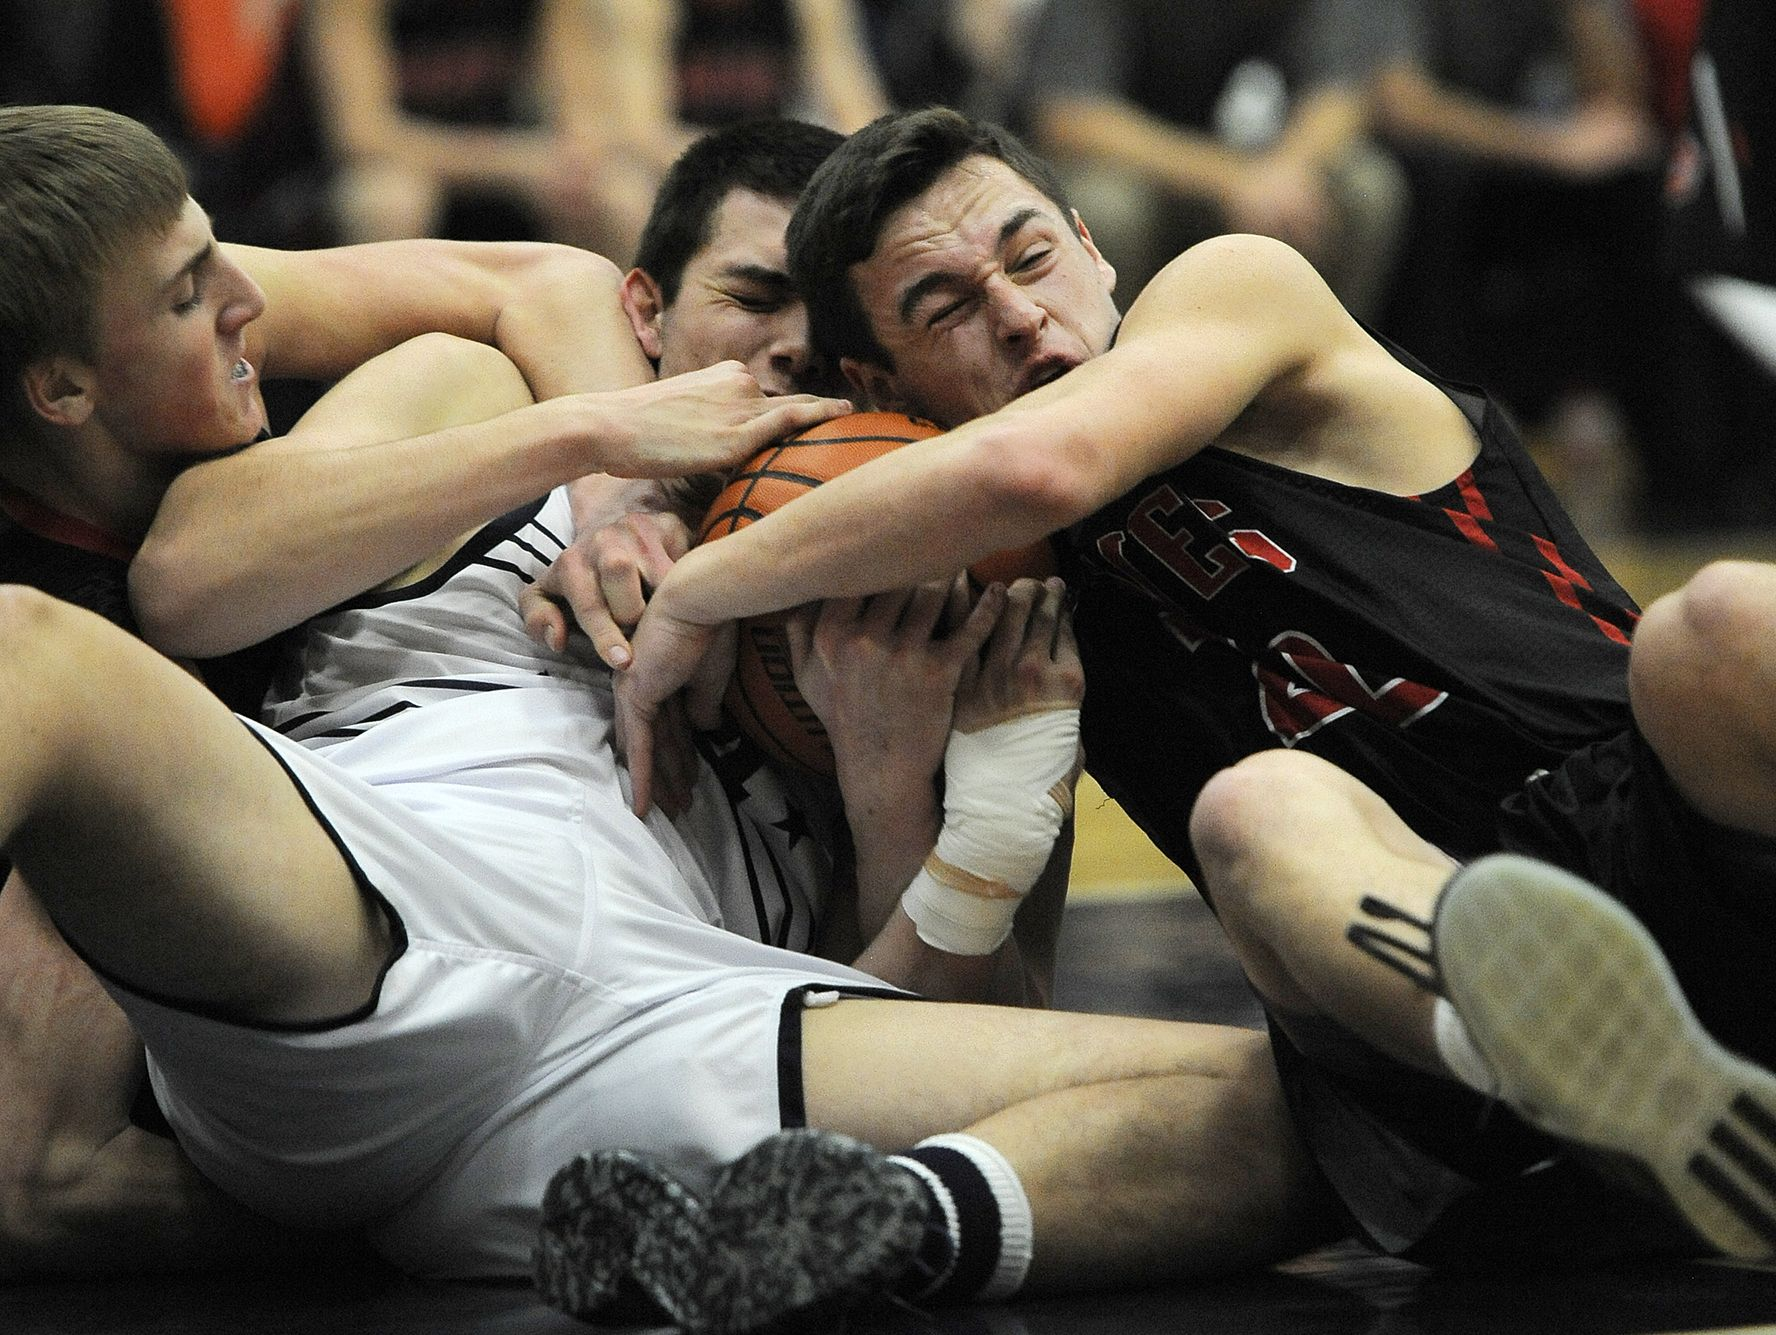 Providence's Alex Judd (center) is sandwiched by Brownstown Central as he battles for a loose ball on Saturday at Providence High School. (Photo by David Lee Hartlage, Special to The Courier-Journal) Feb.18, 2017